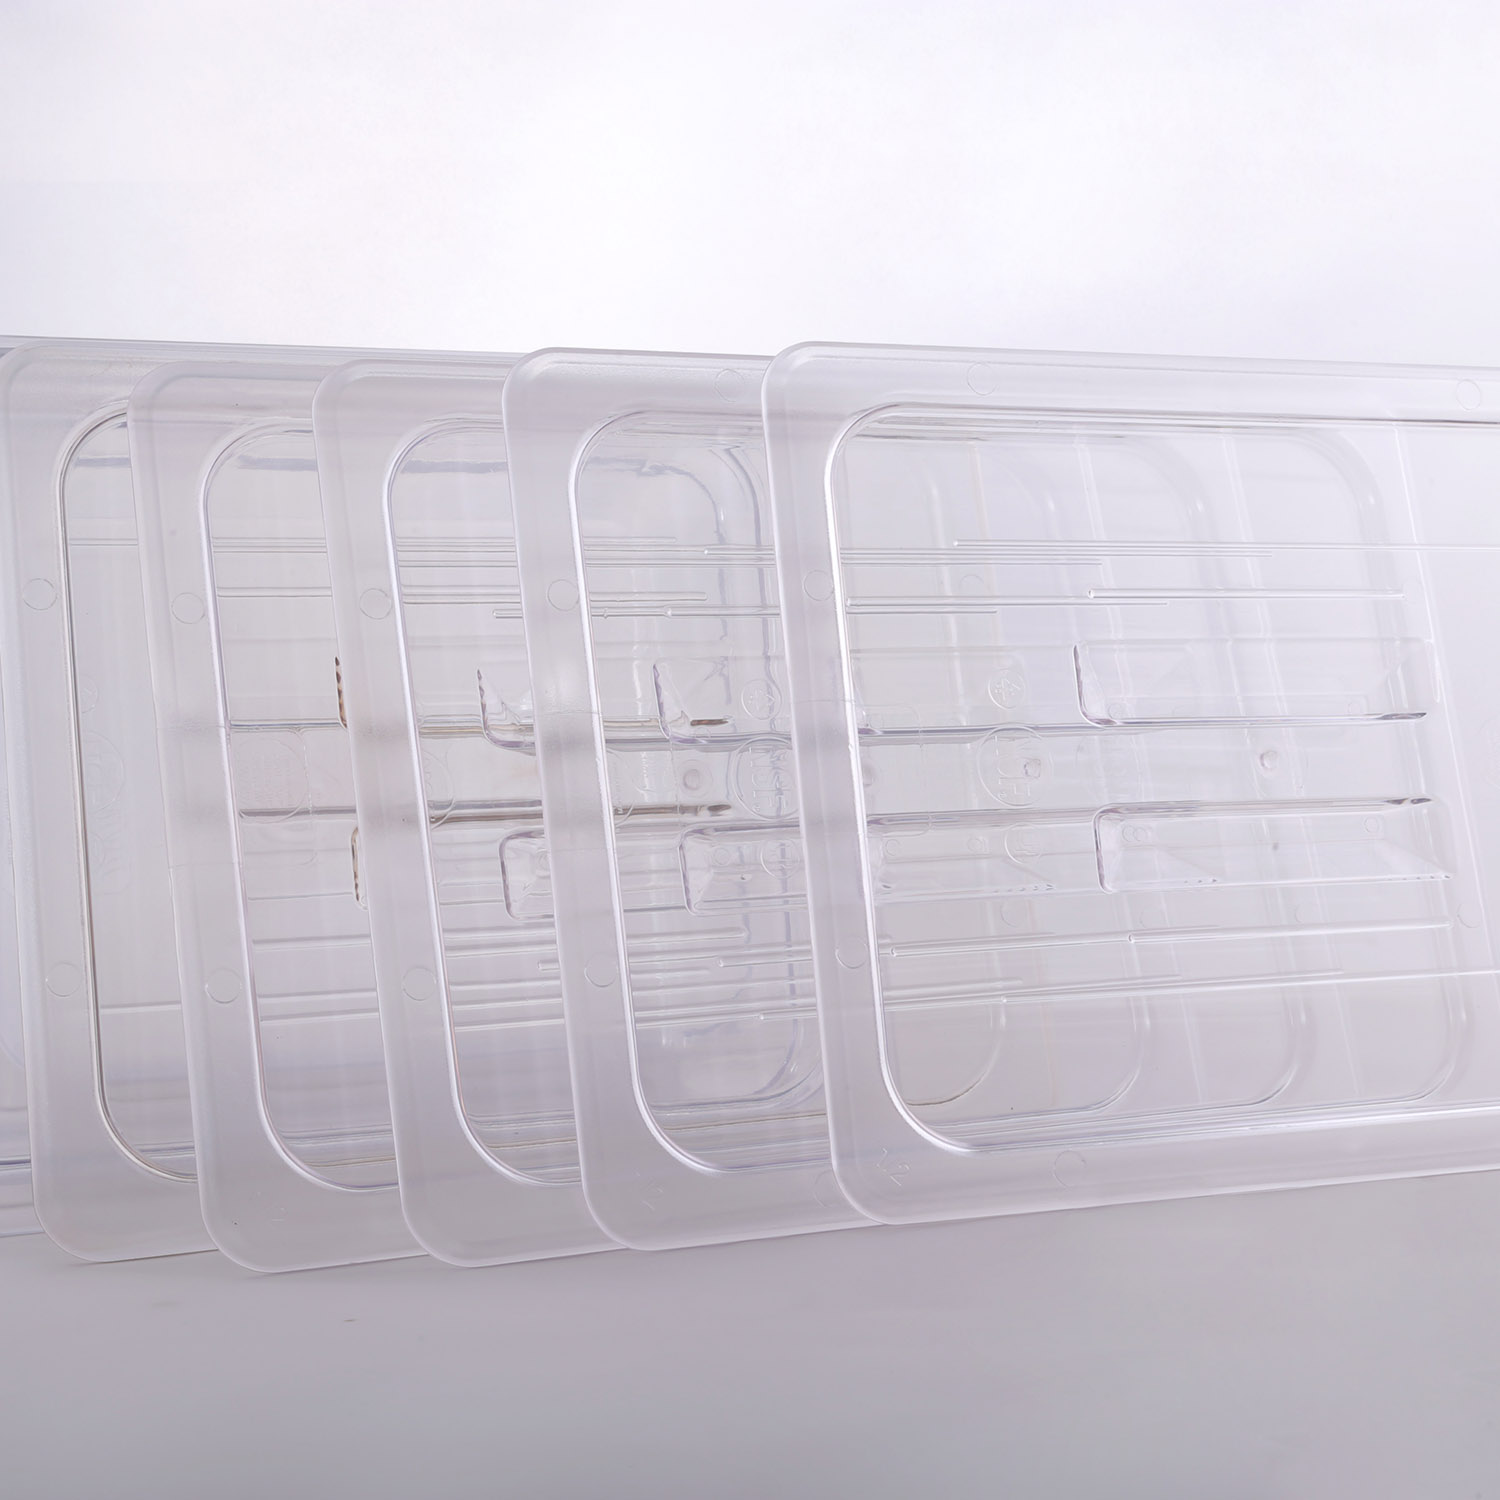 Hakka 1/2 Size Polycarbonate Gastronorm Pans Lid&Cover,Clear - Pack of 6